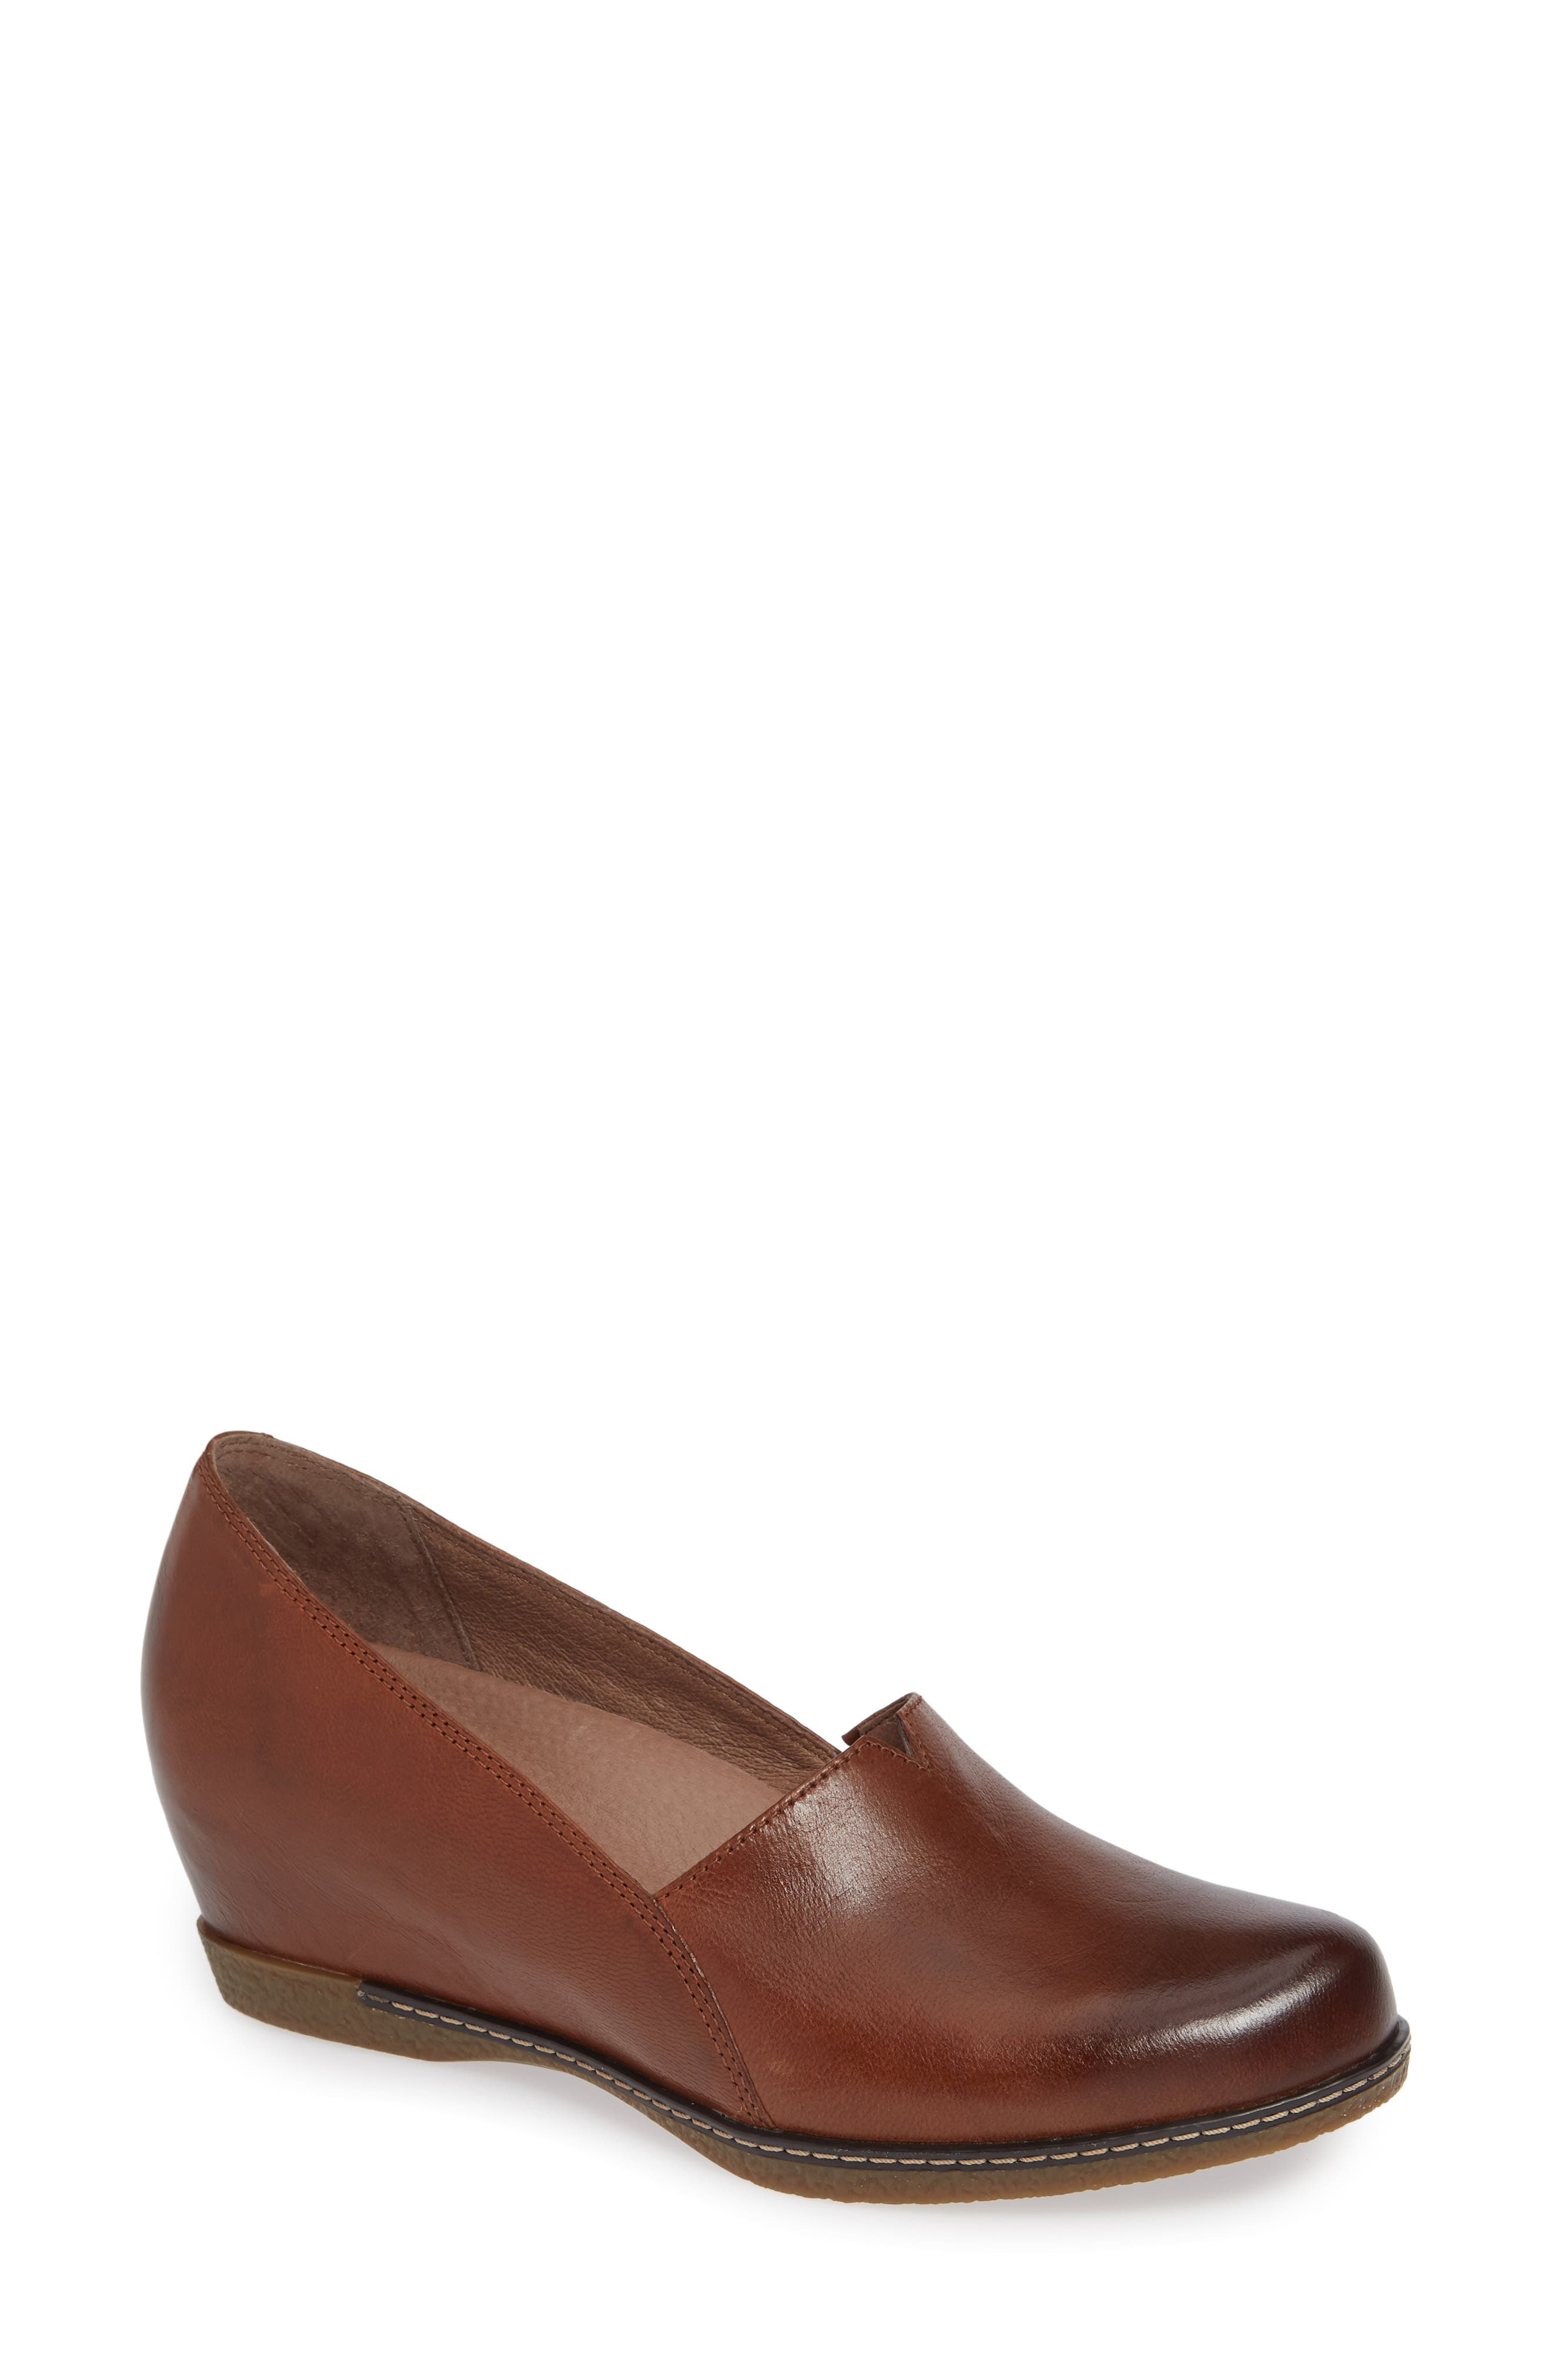 Liliana Concealed Wedge Slip-On,                             Main thumbnail 1, color,                             Chestnut Burnished Leather